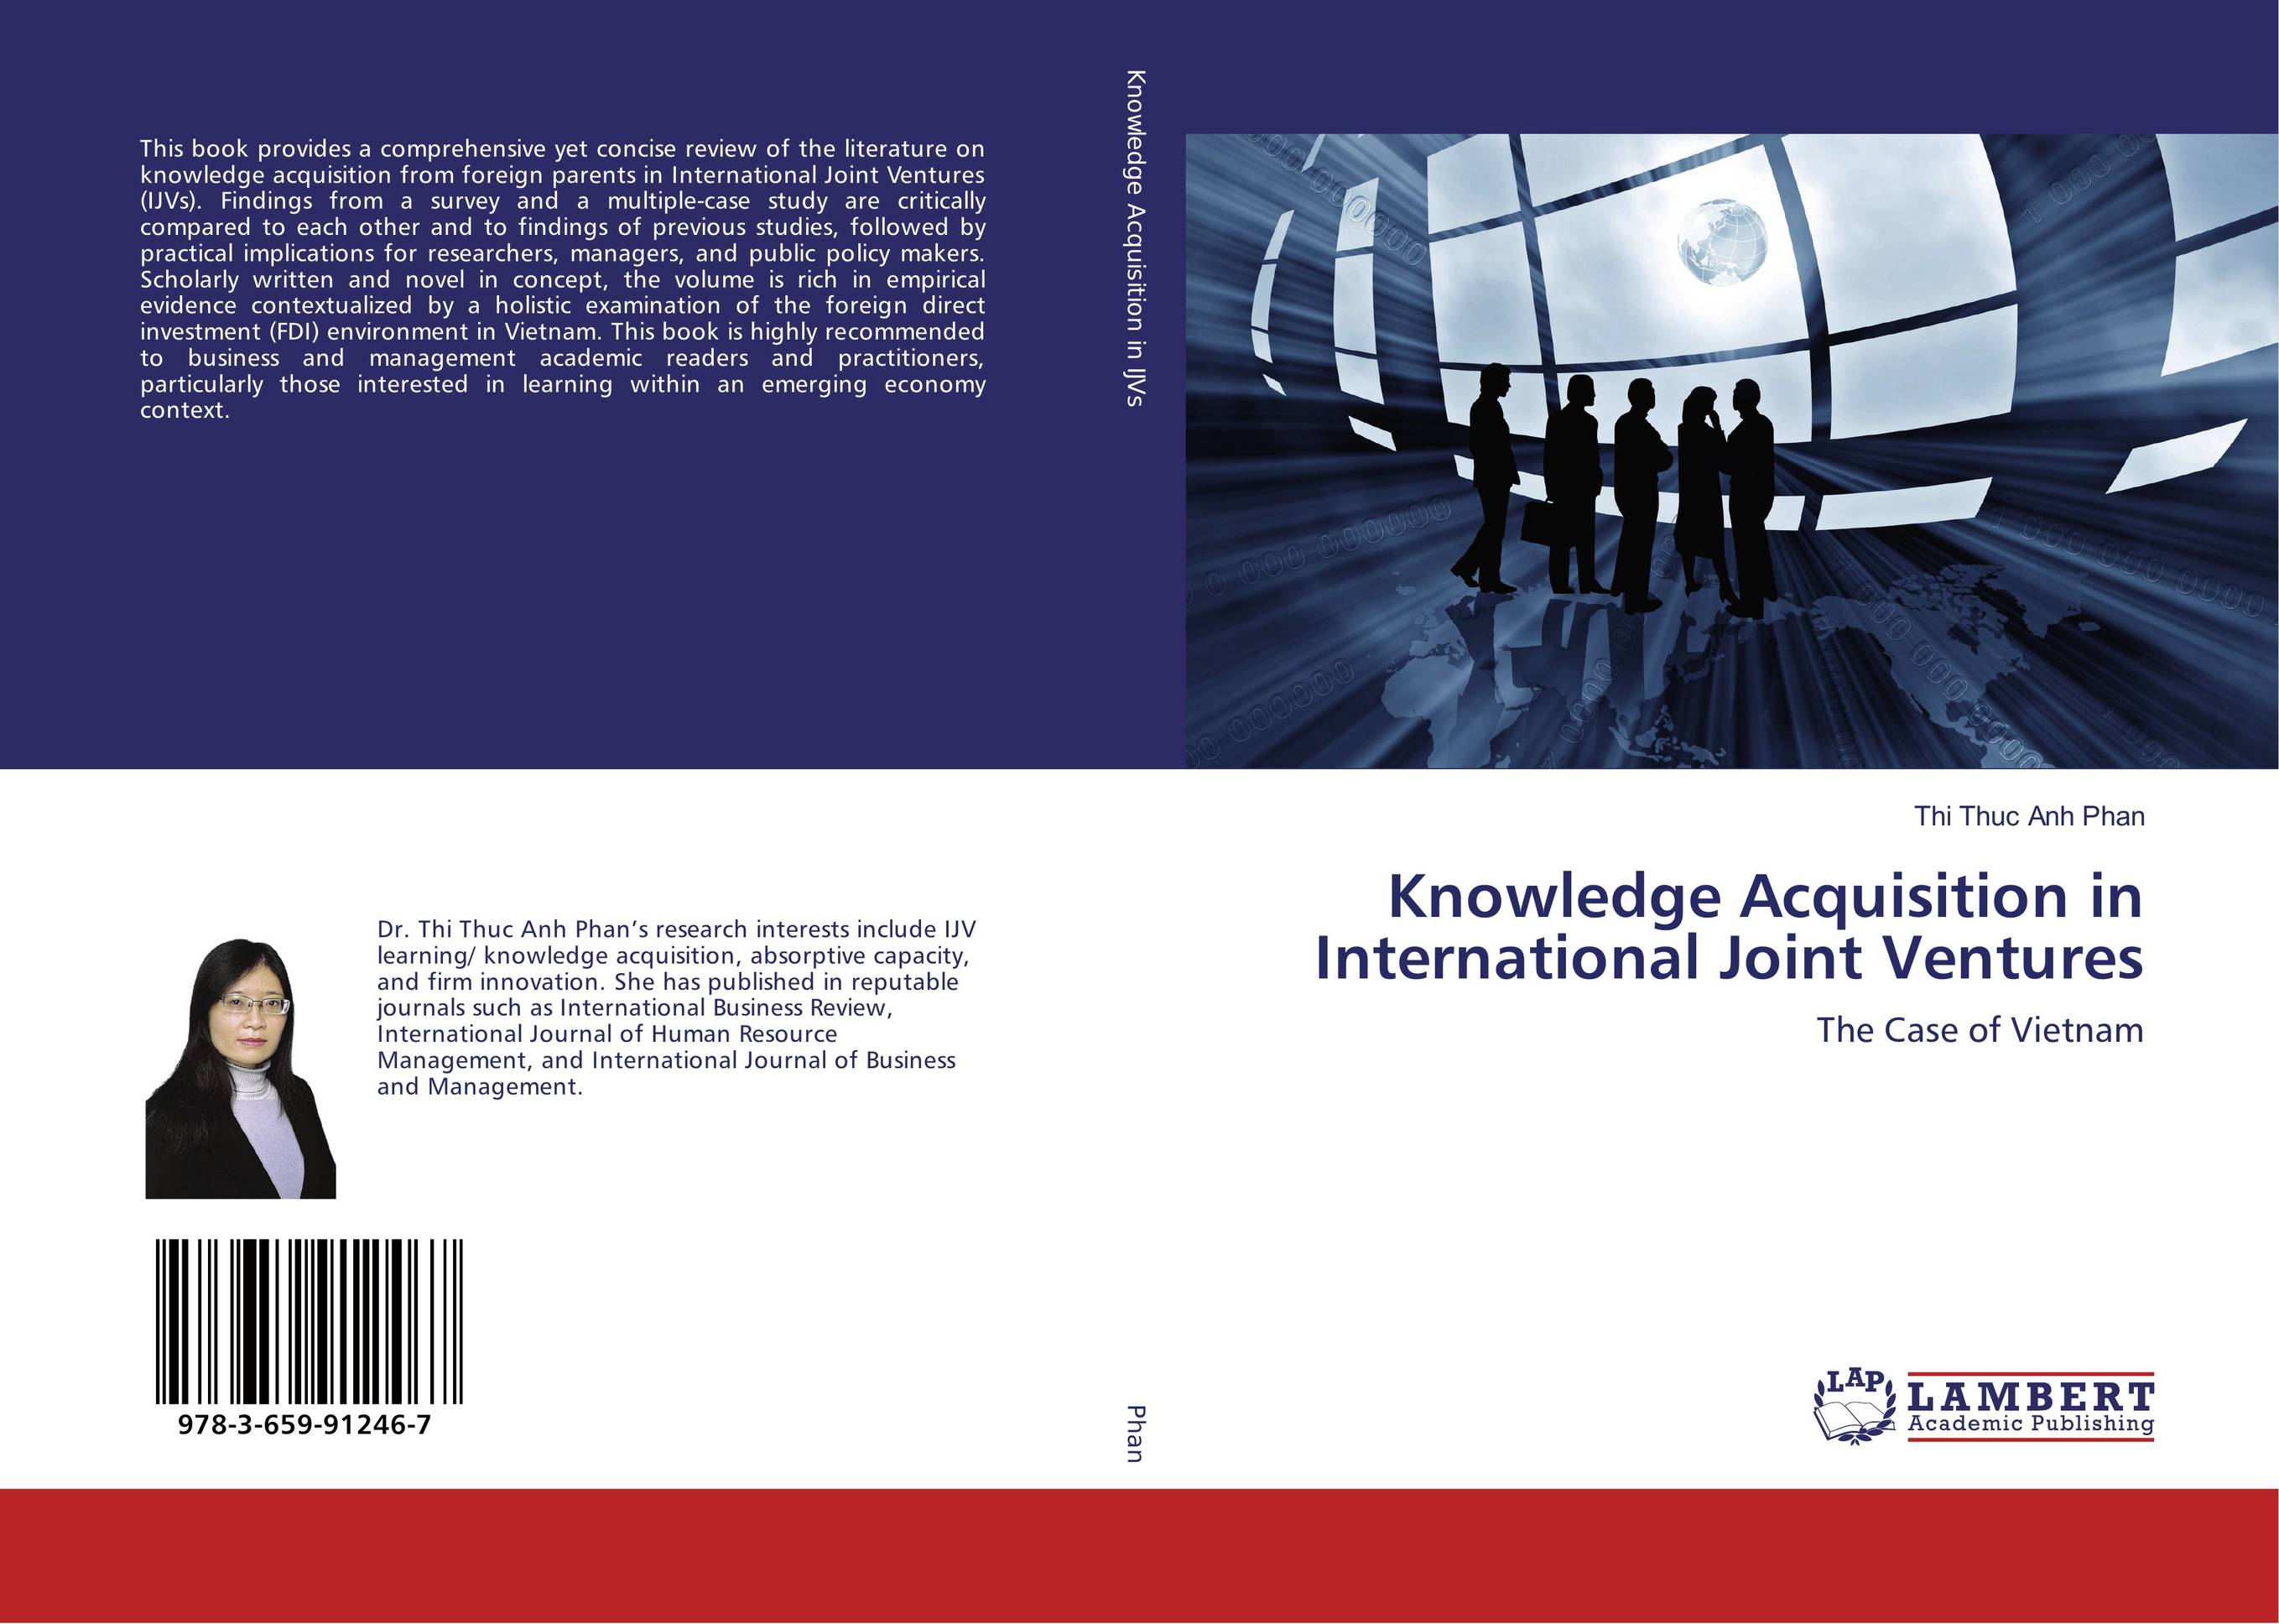 a study of international joint ventures in china Our china attorneys consistently see the following mistakes with china joint ventures: resolving a joint venture dispute usually most be done in china, either through litigation in the chinese courts or through arbitration with cietac, bac (beijing arbitration commission), or some other legitimate chinese arbitration body.